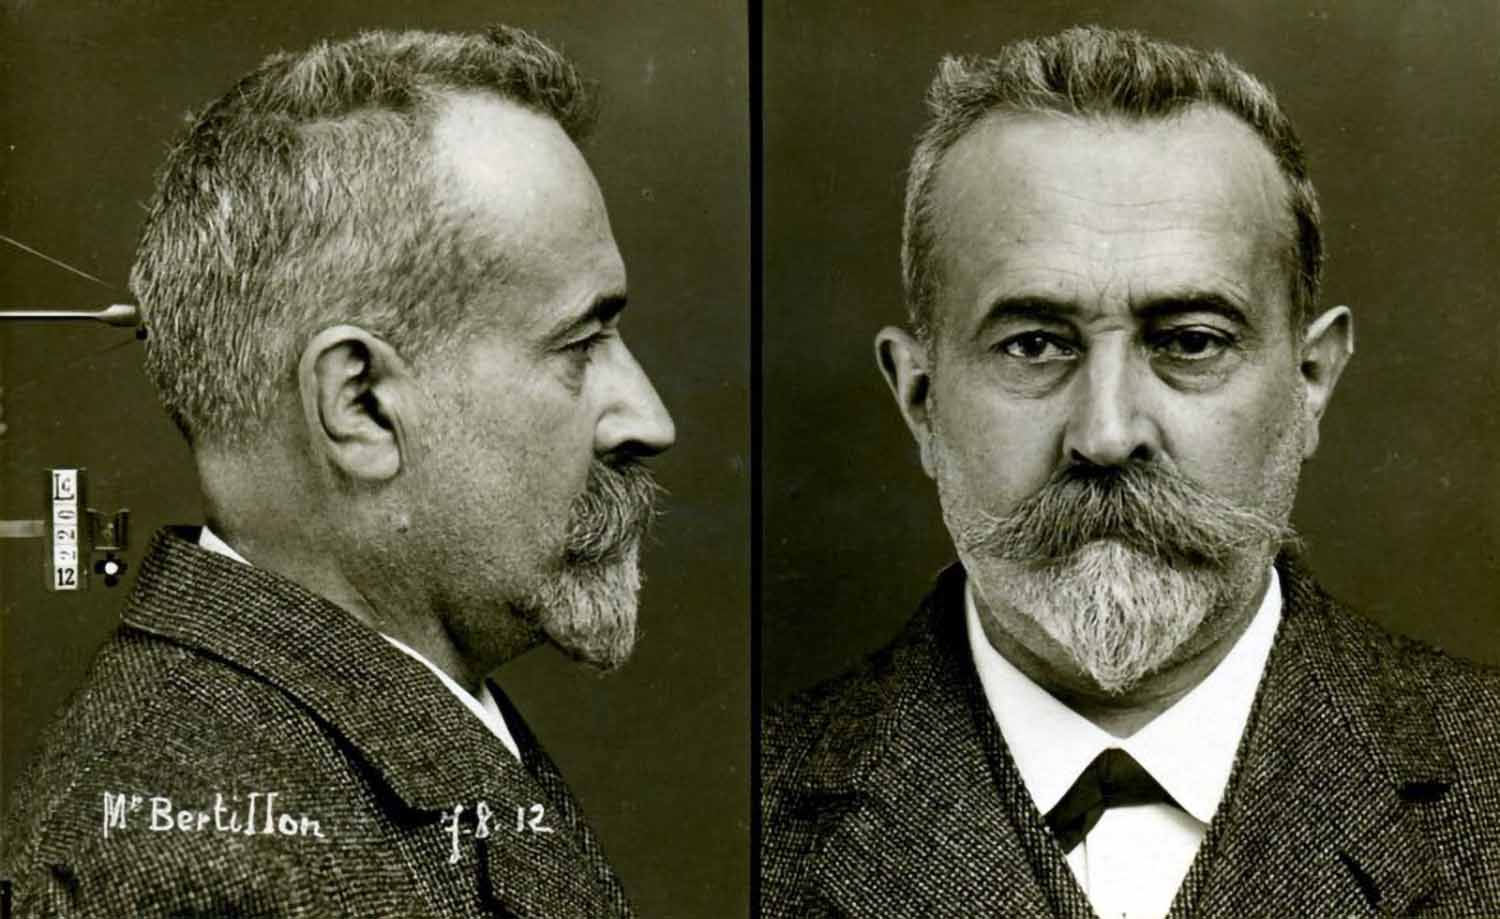 Mugshots were invented by French criminologist Alphonse Bertillon in 1888, shown here in a self portrait in the mugshot photography template he created. Source:  The Metropolitan Museum of Art, New York